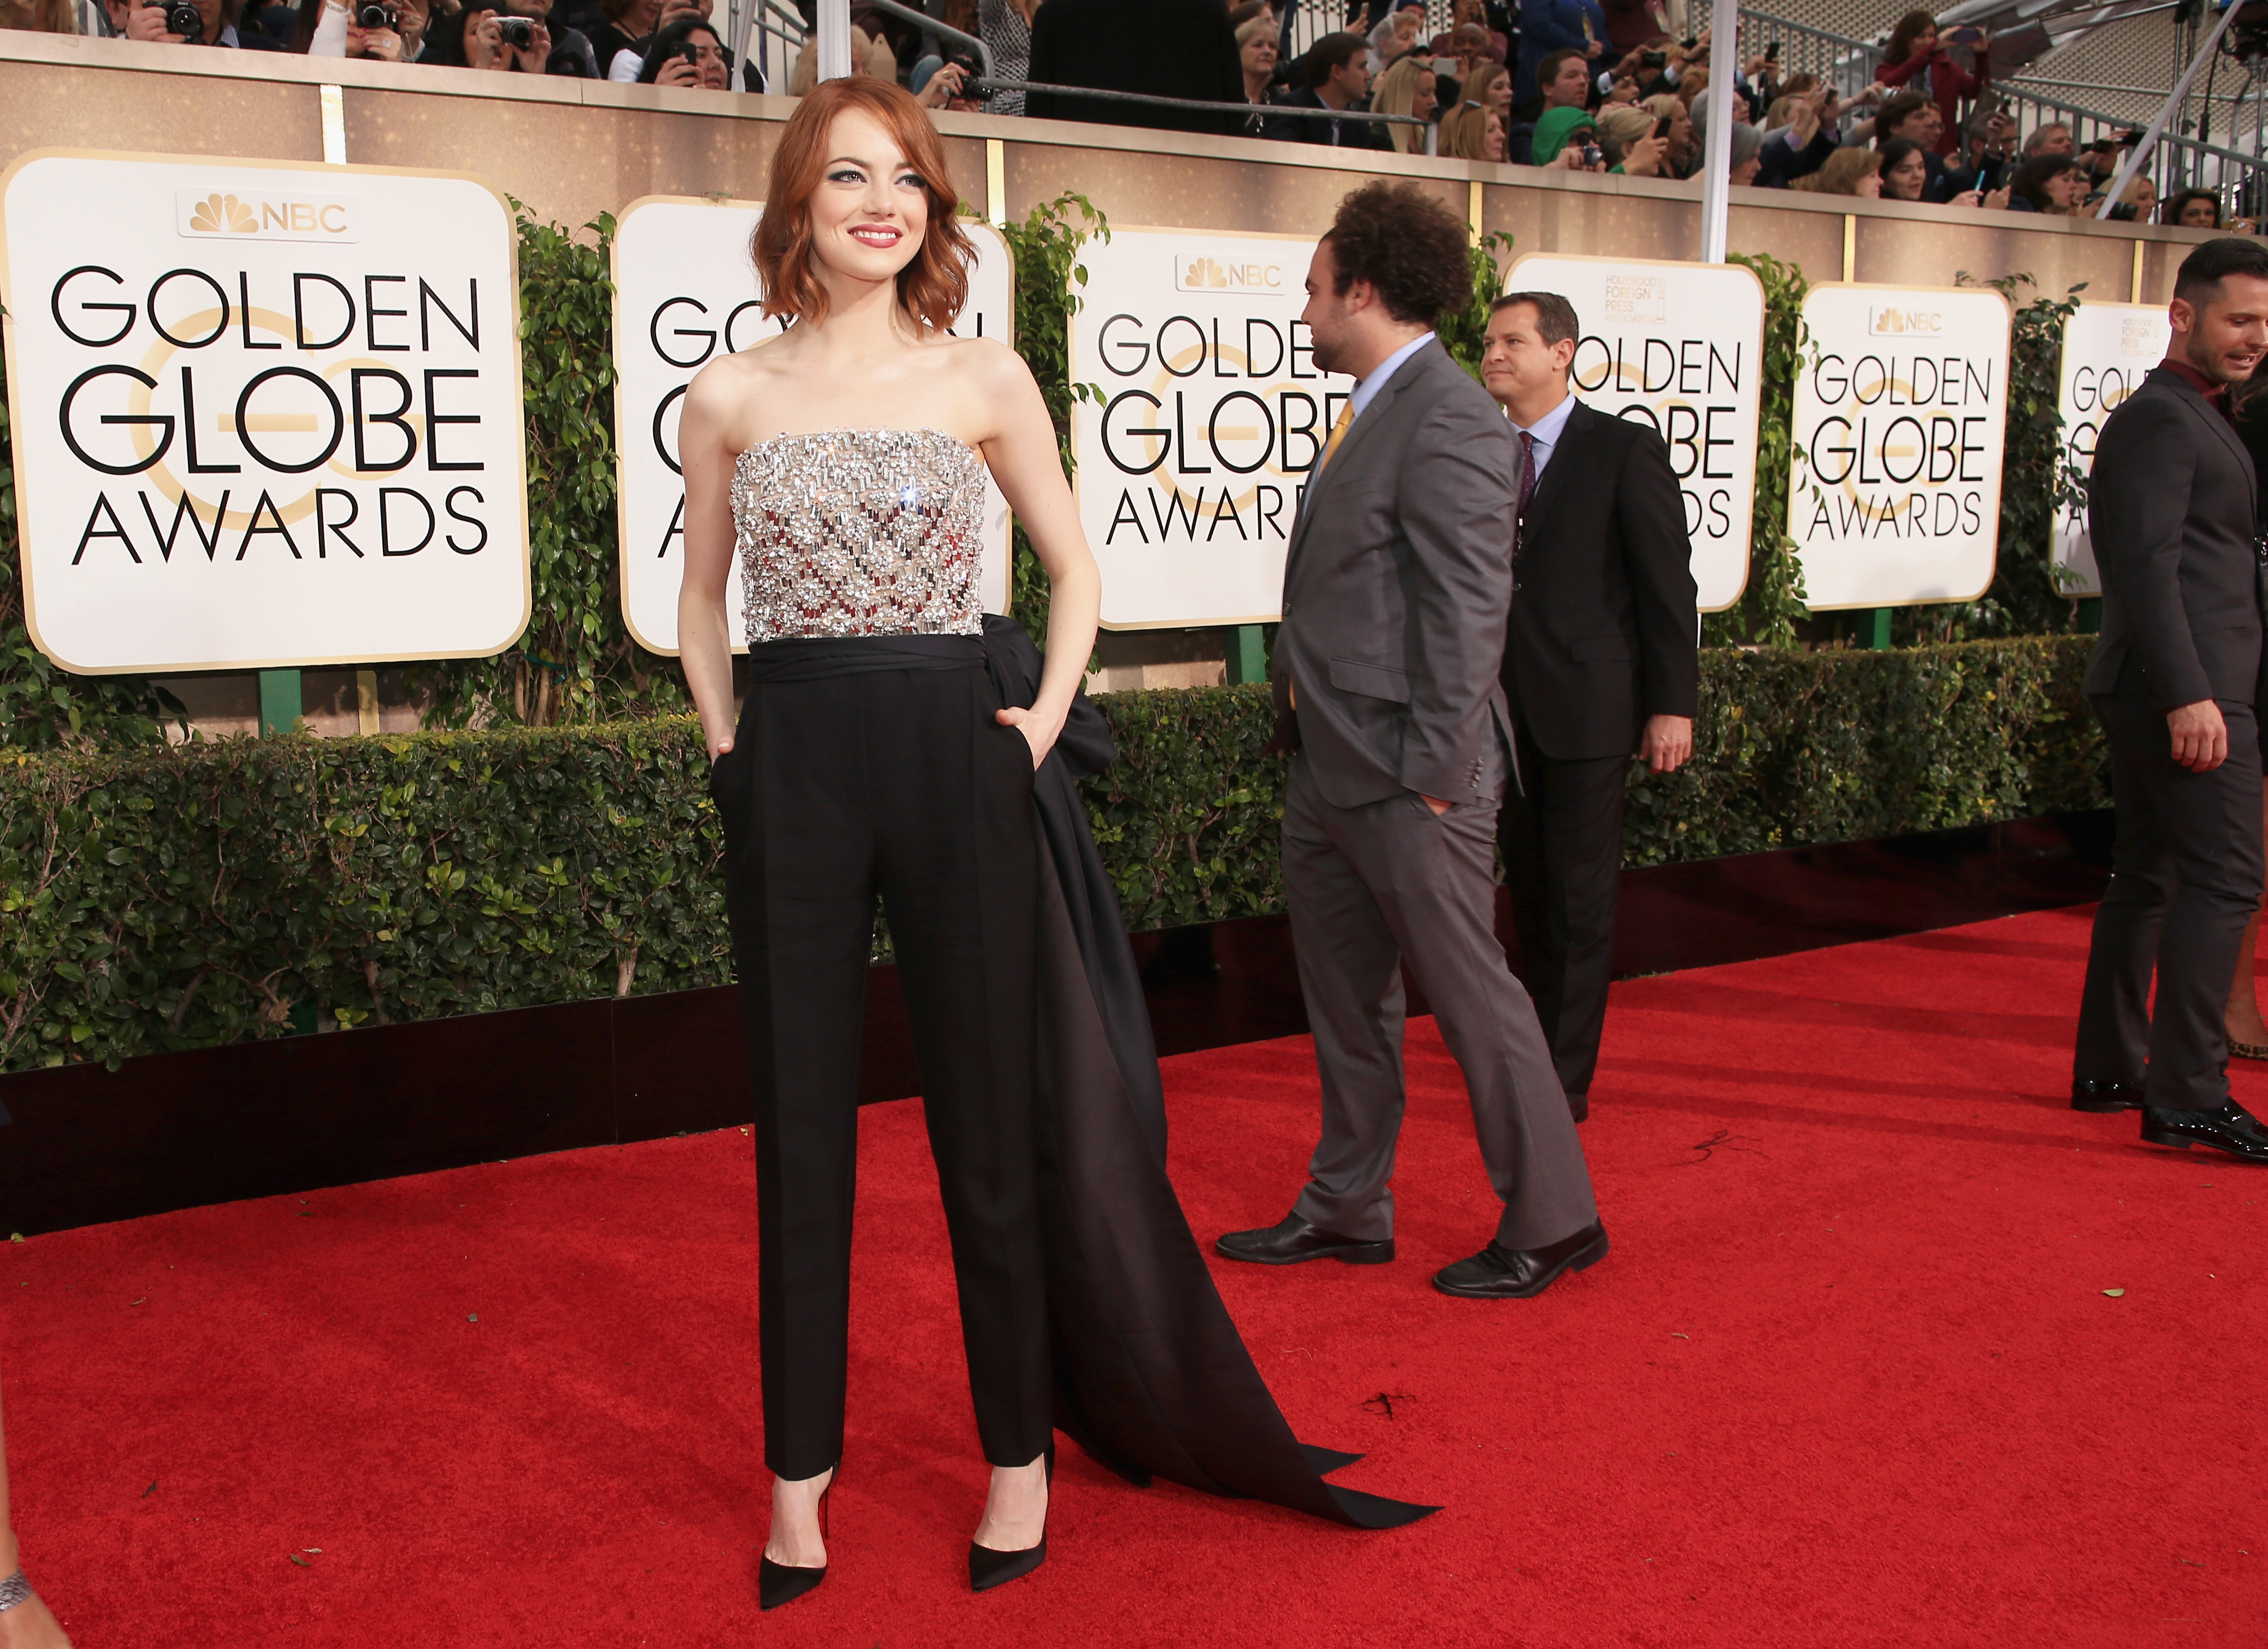 Emma Stone at the Golden Globes. Photo: Getty